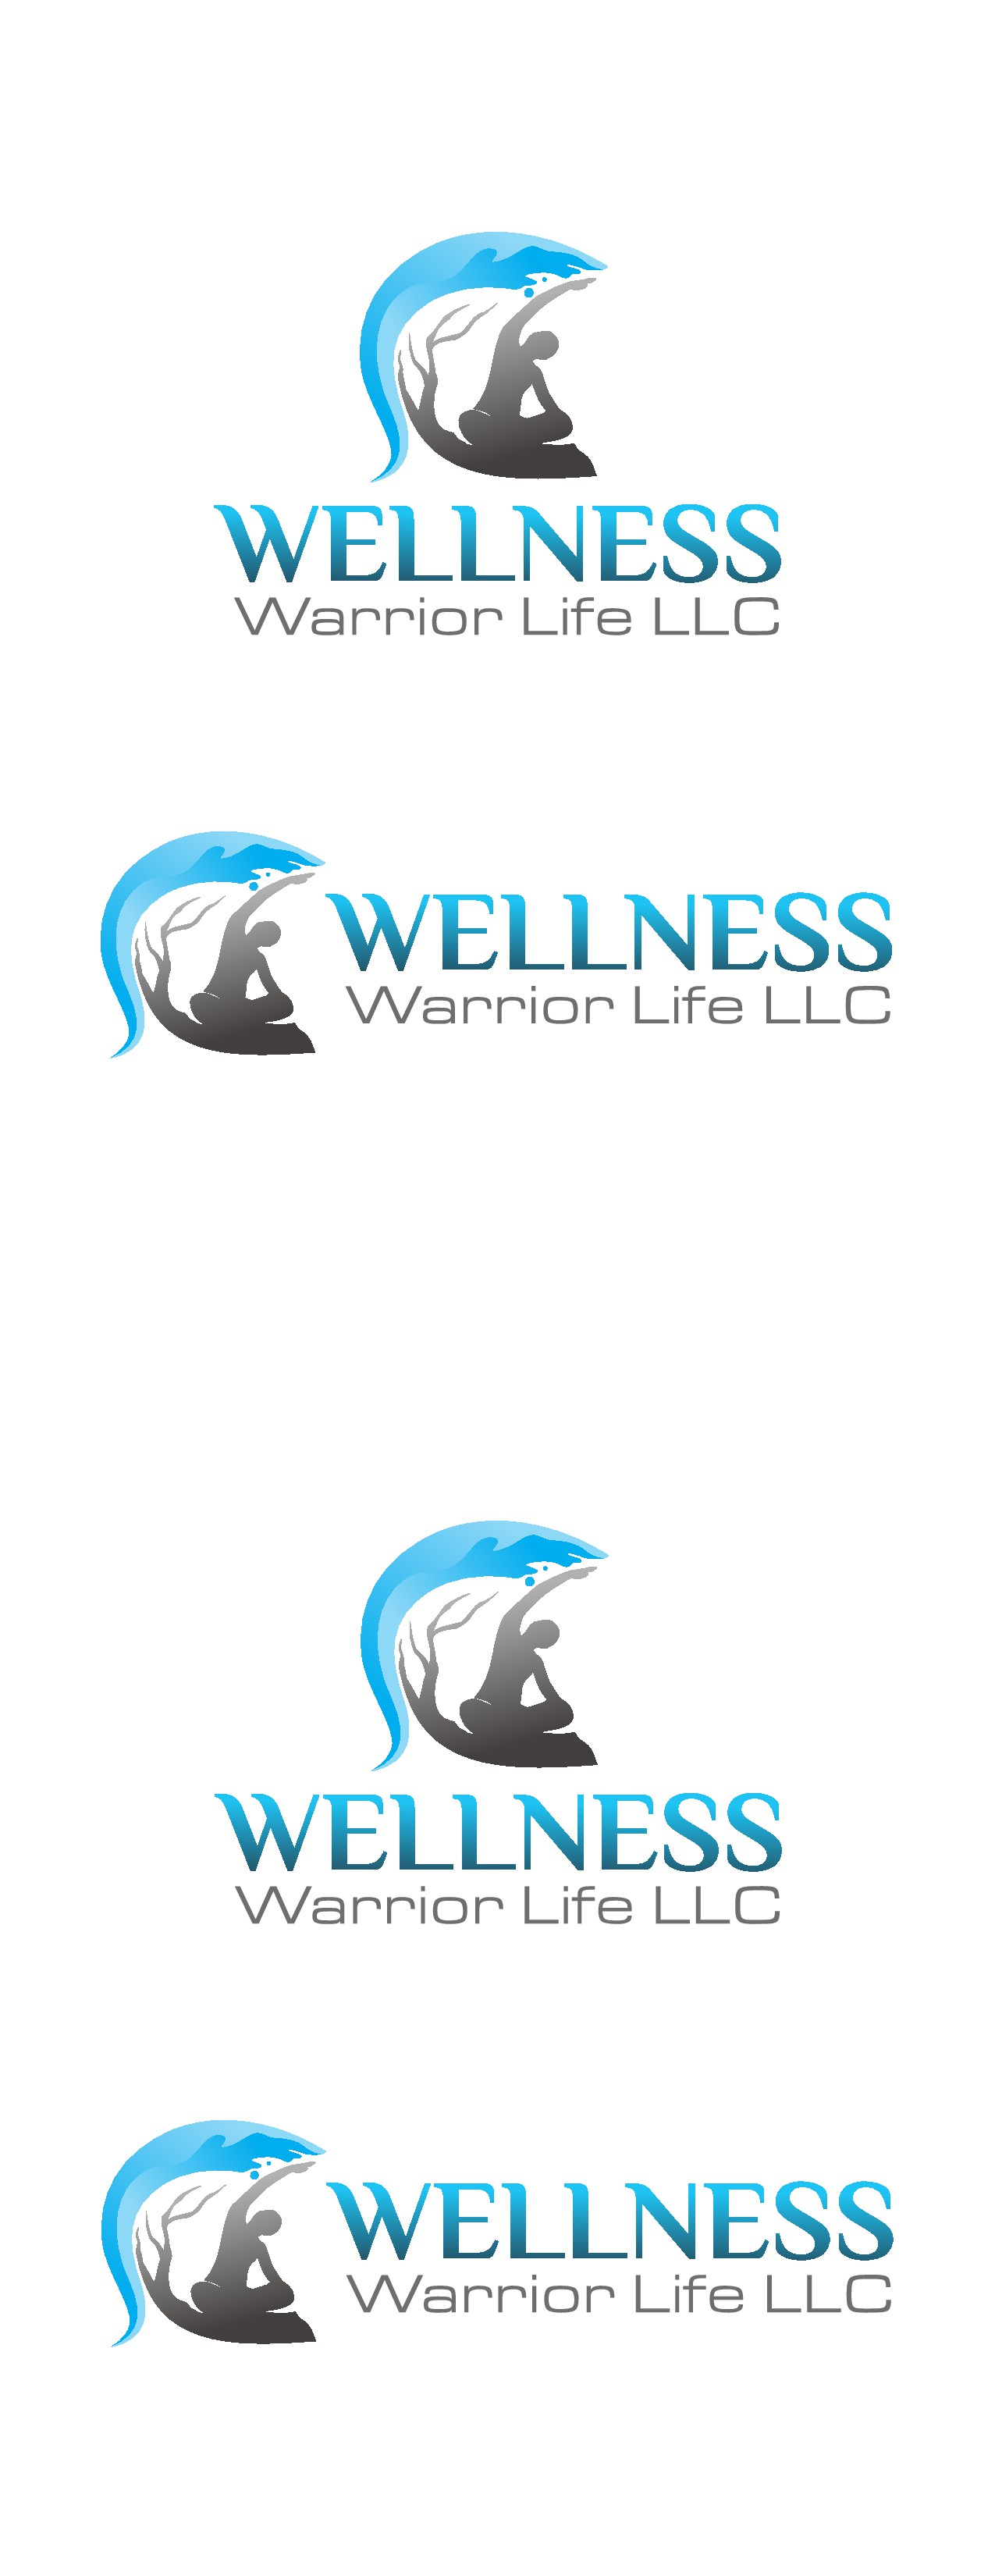 Wellness Warrior Life LLC needs a hippie and hipster mix